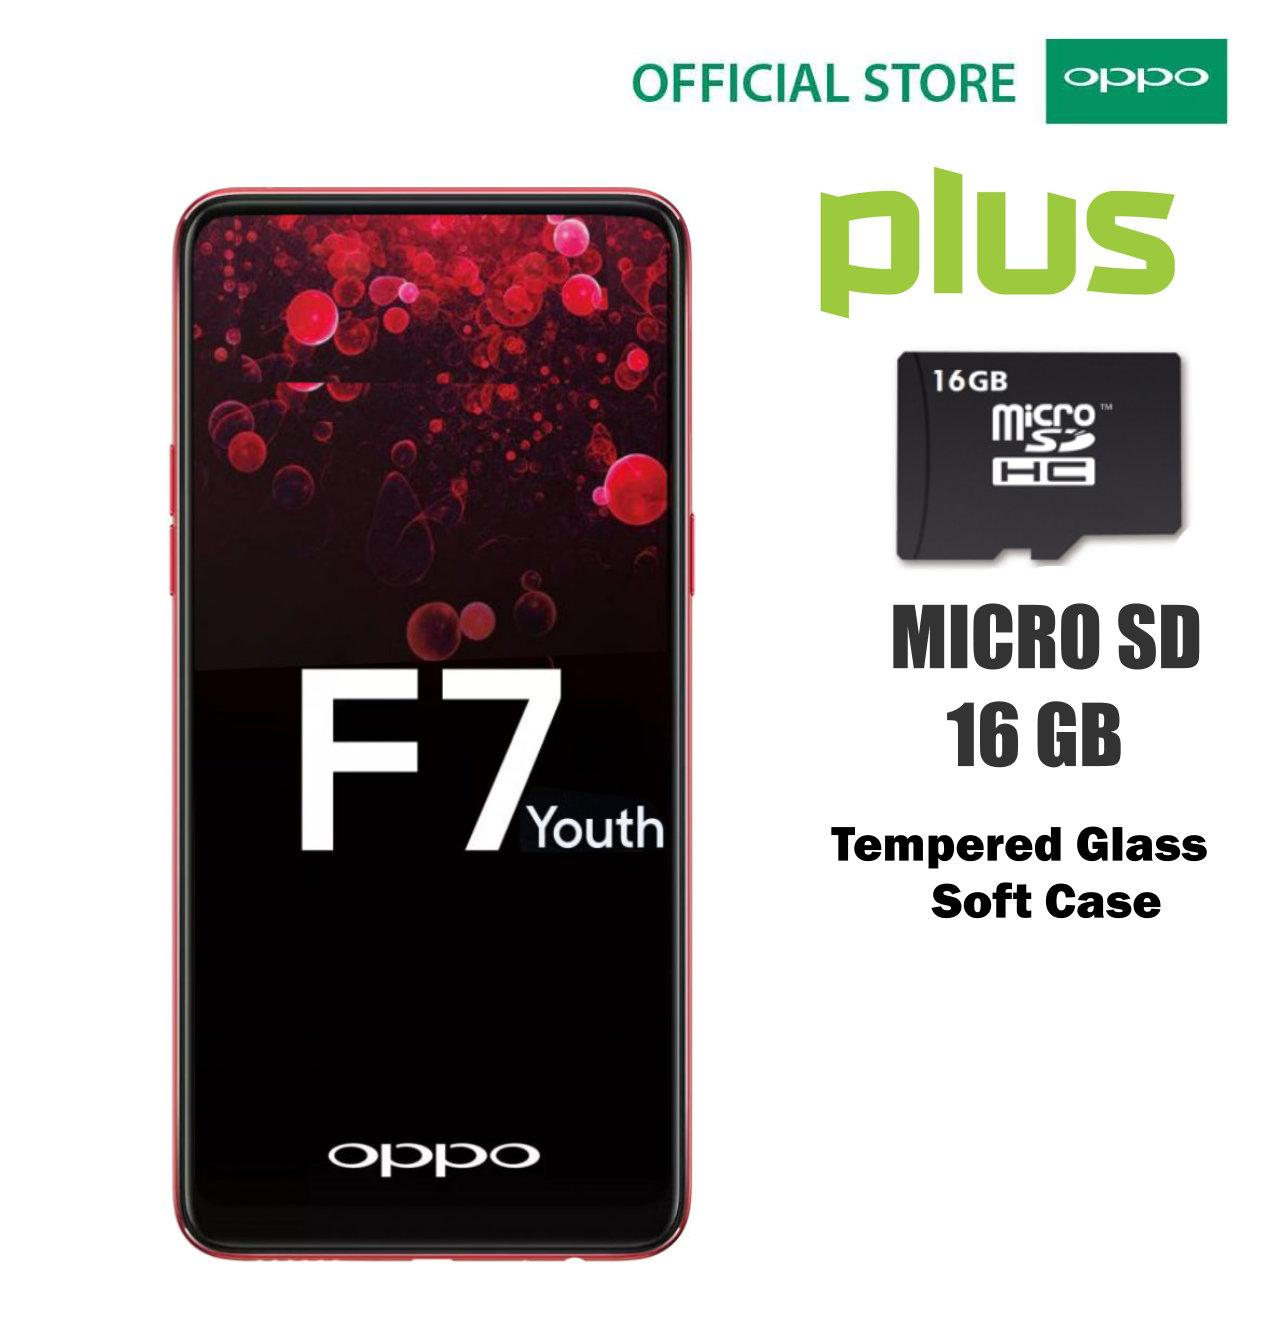 OPPO F7 YOUTH - Red Plus Micro SD V-Gen 16 GB